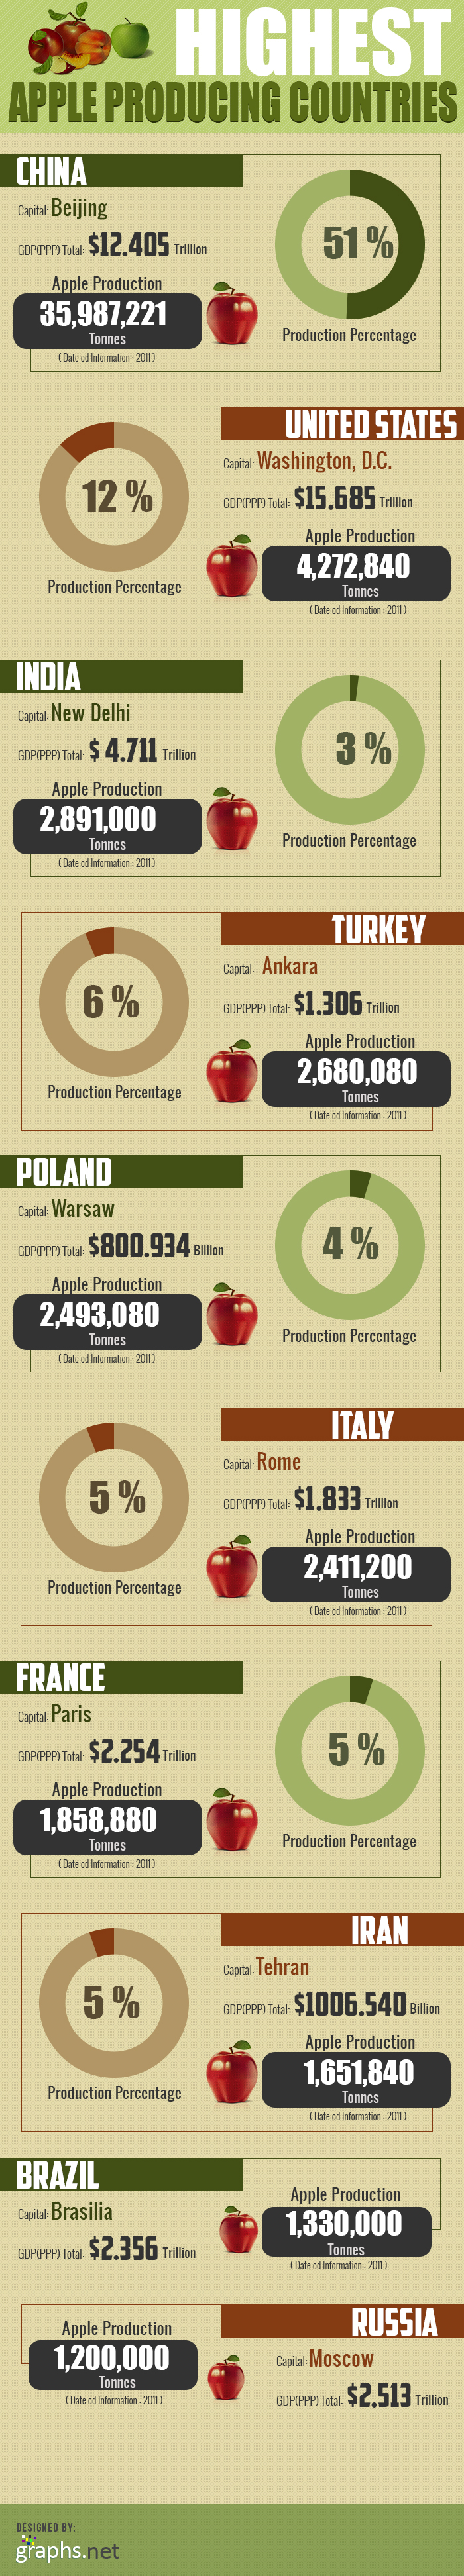 Highest Apple Producing Countries